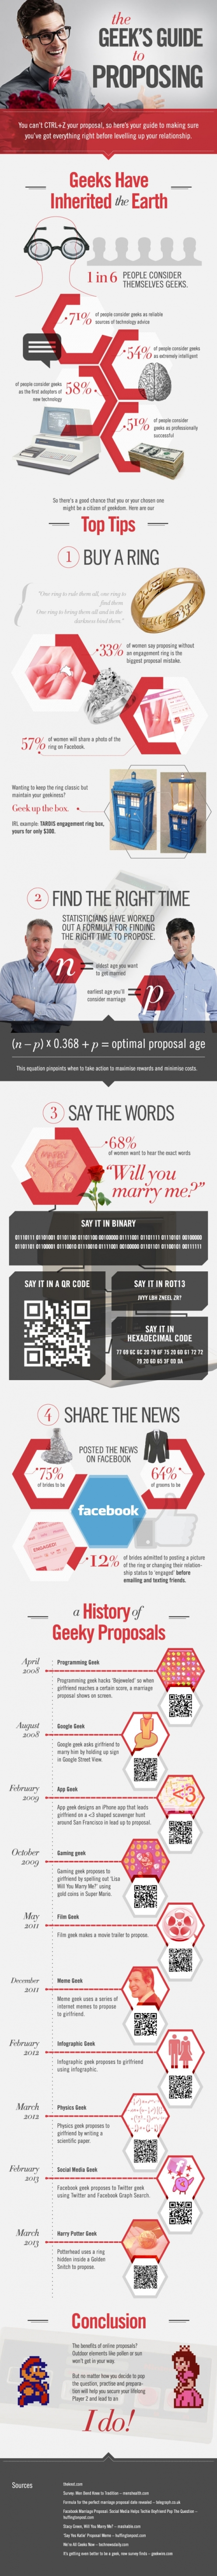 The ultimate geek marriage proposal guide